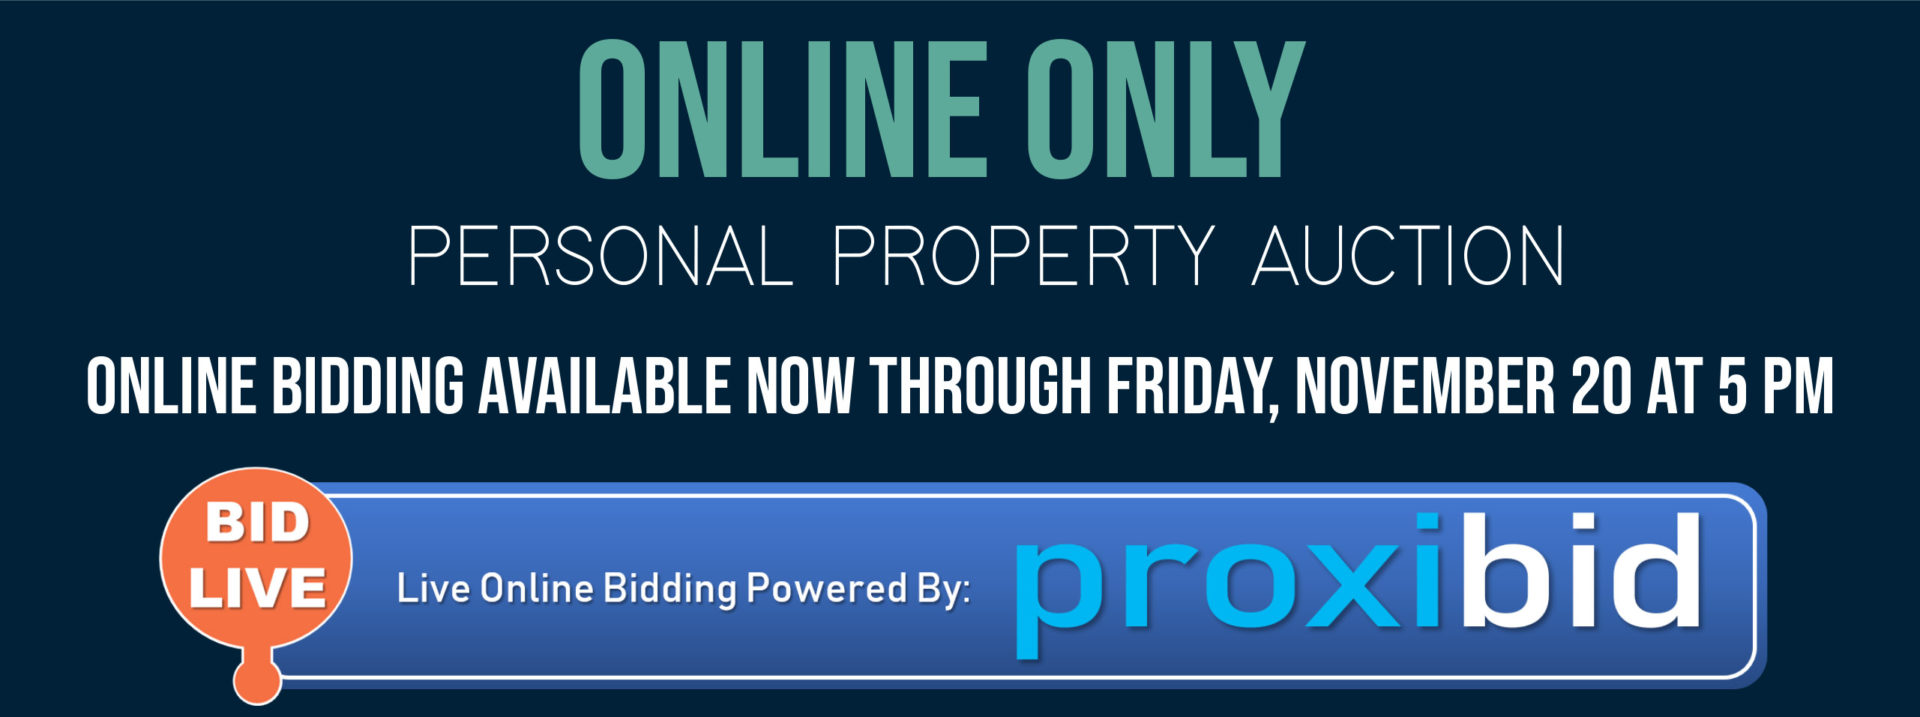 Online-only-personal-property-sale